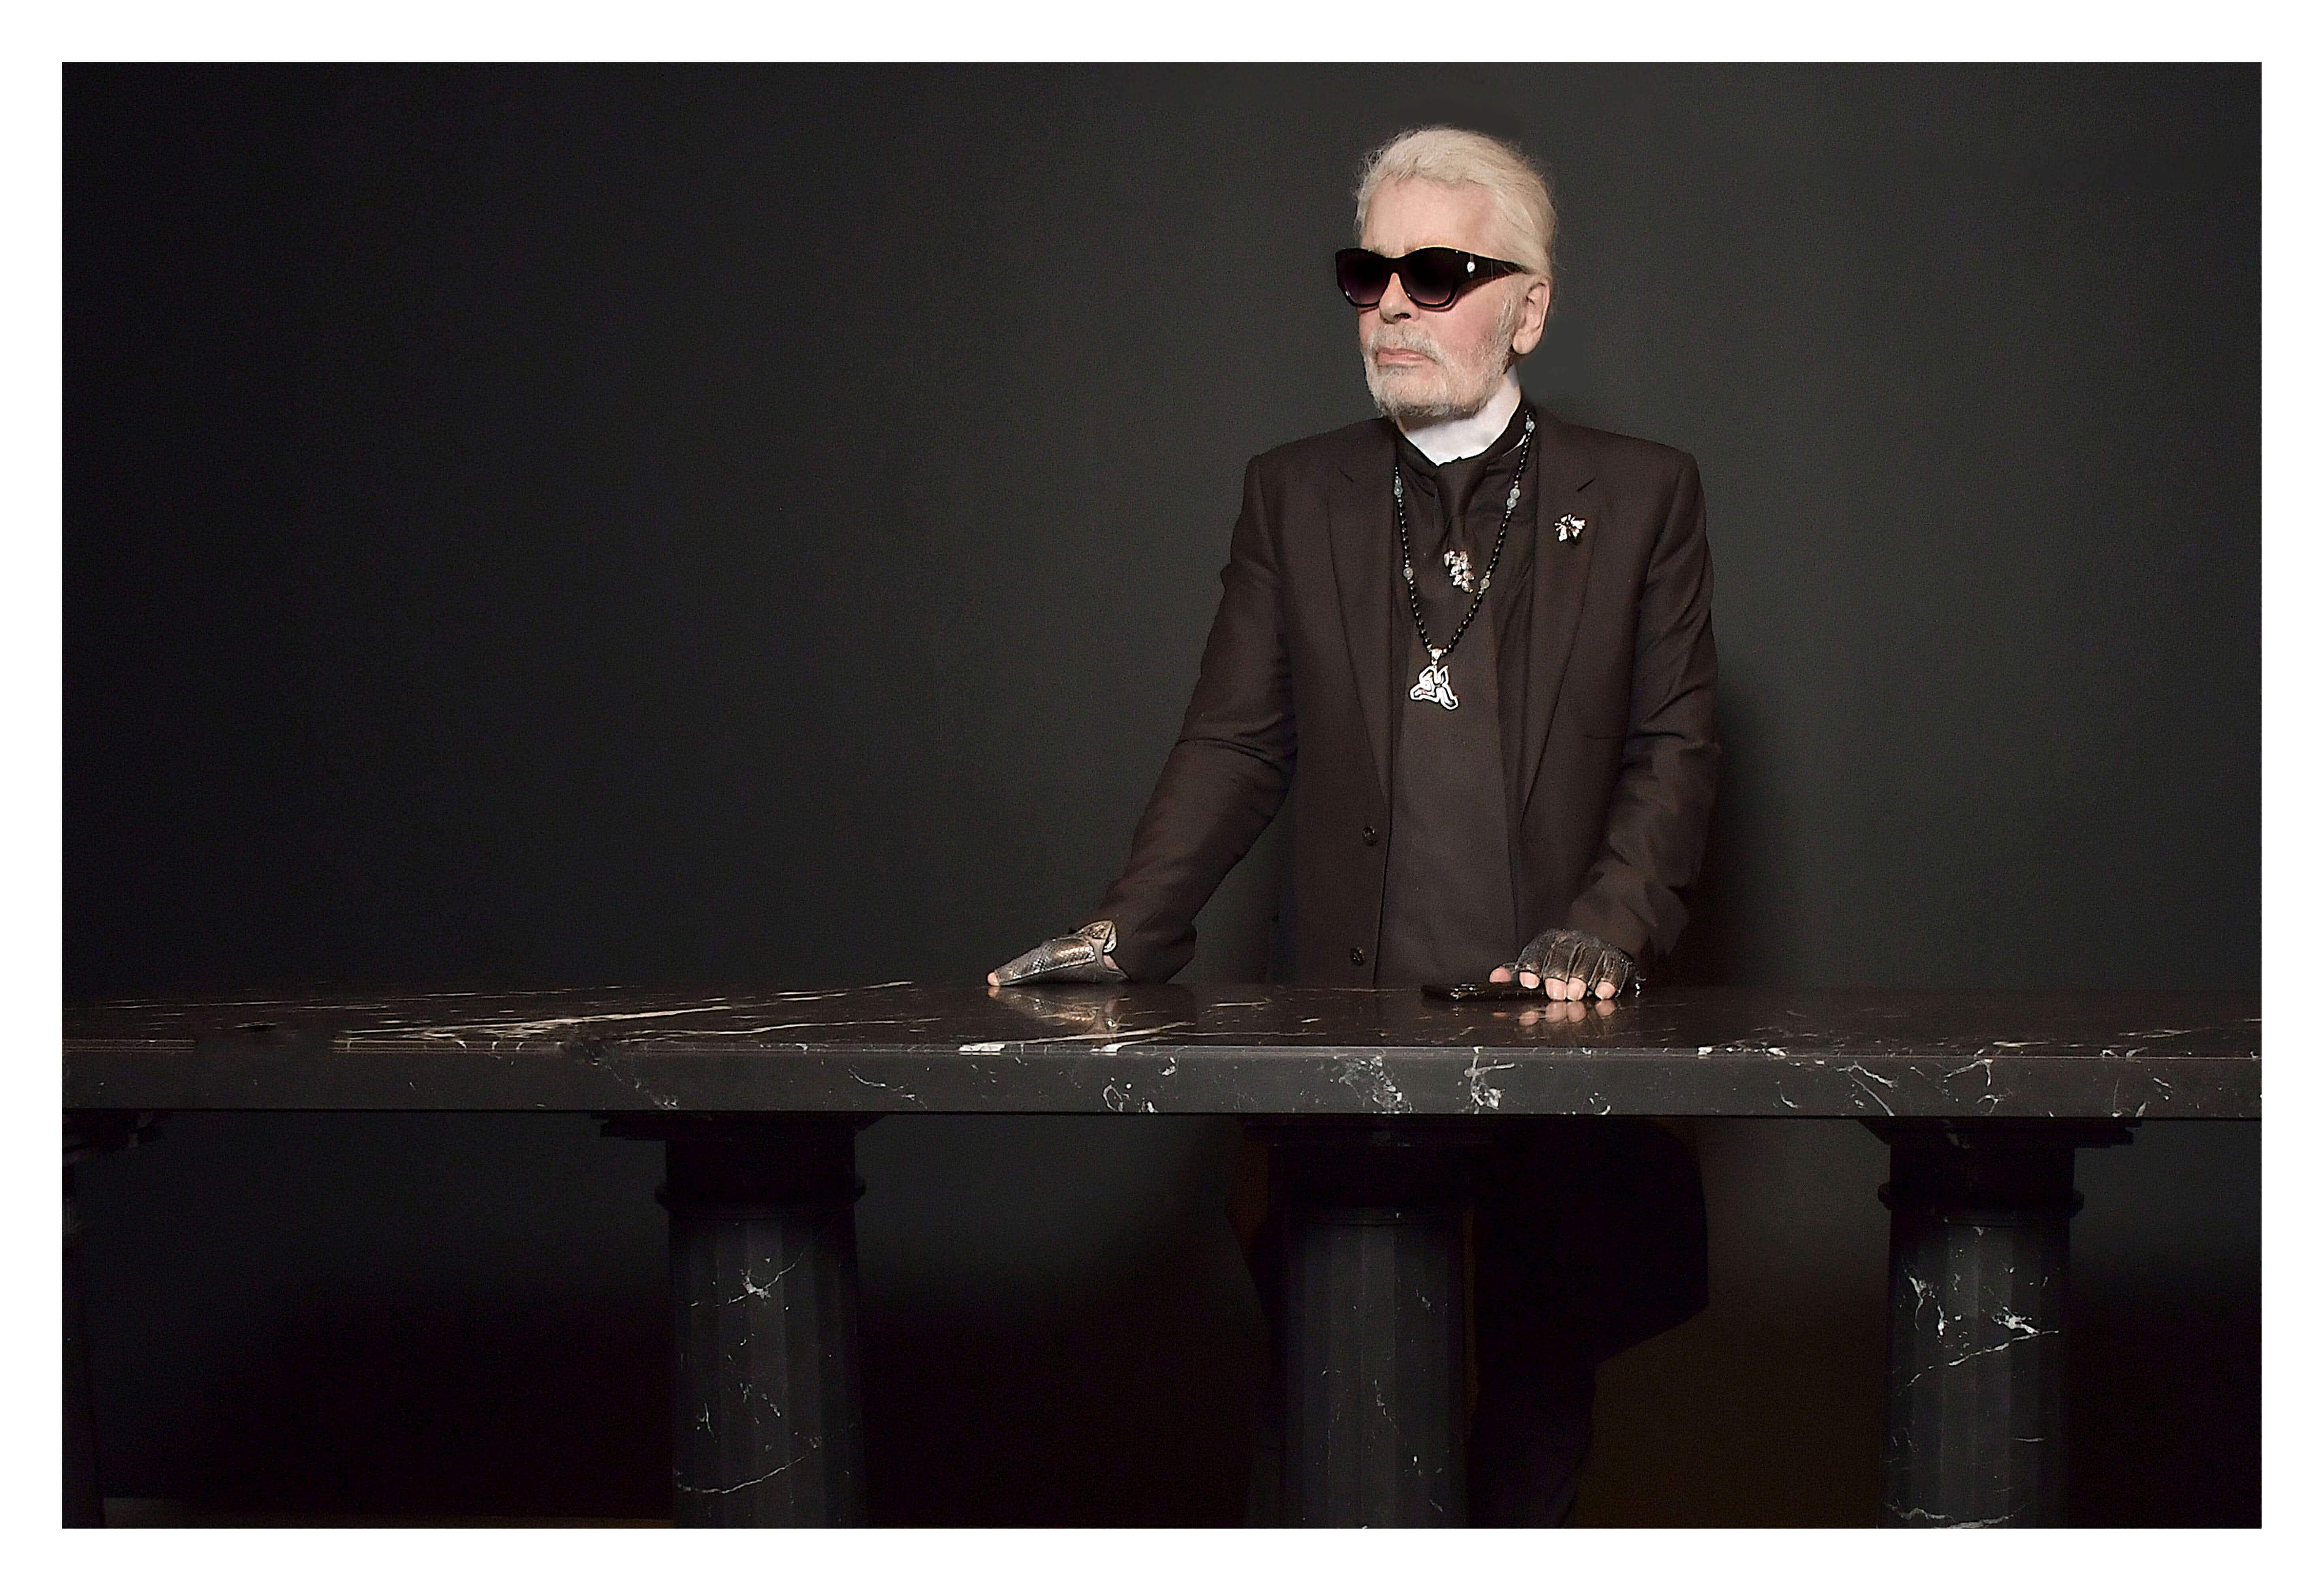 Karl Lagerfeld's collection of sculptured furniture is on display in London